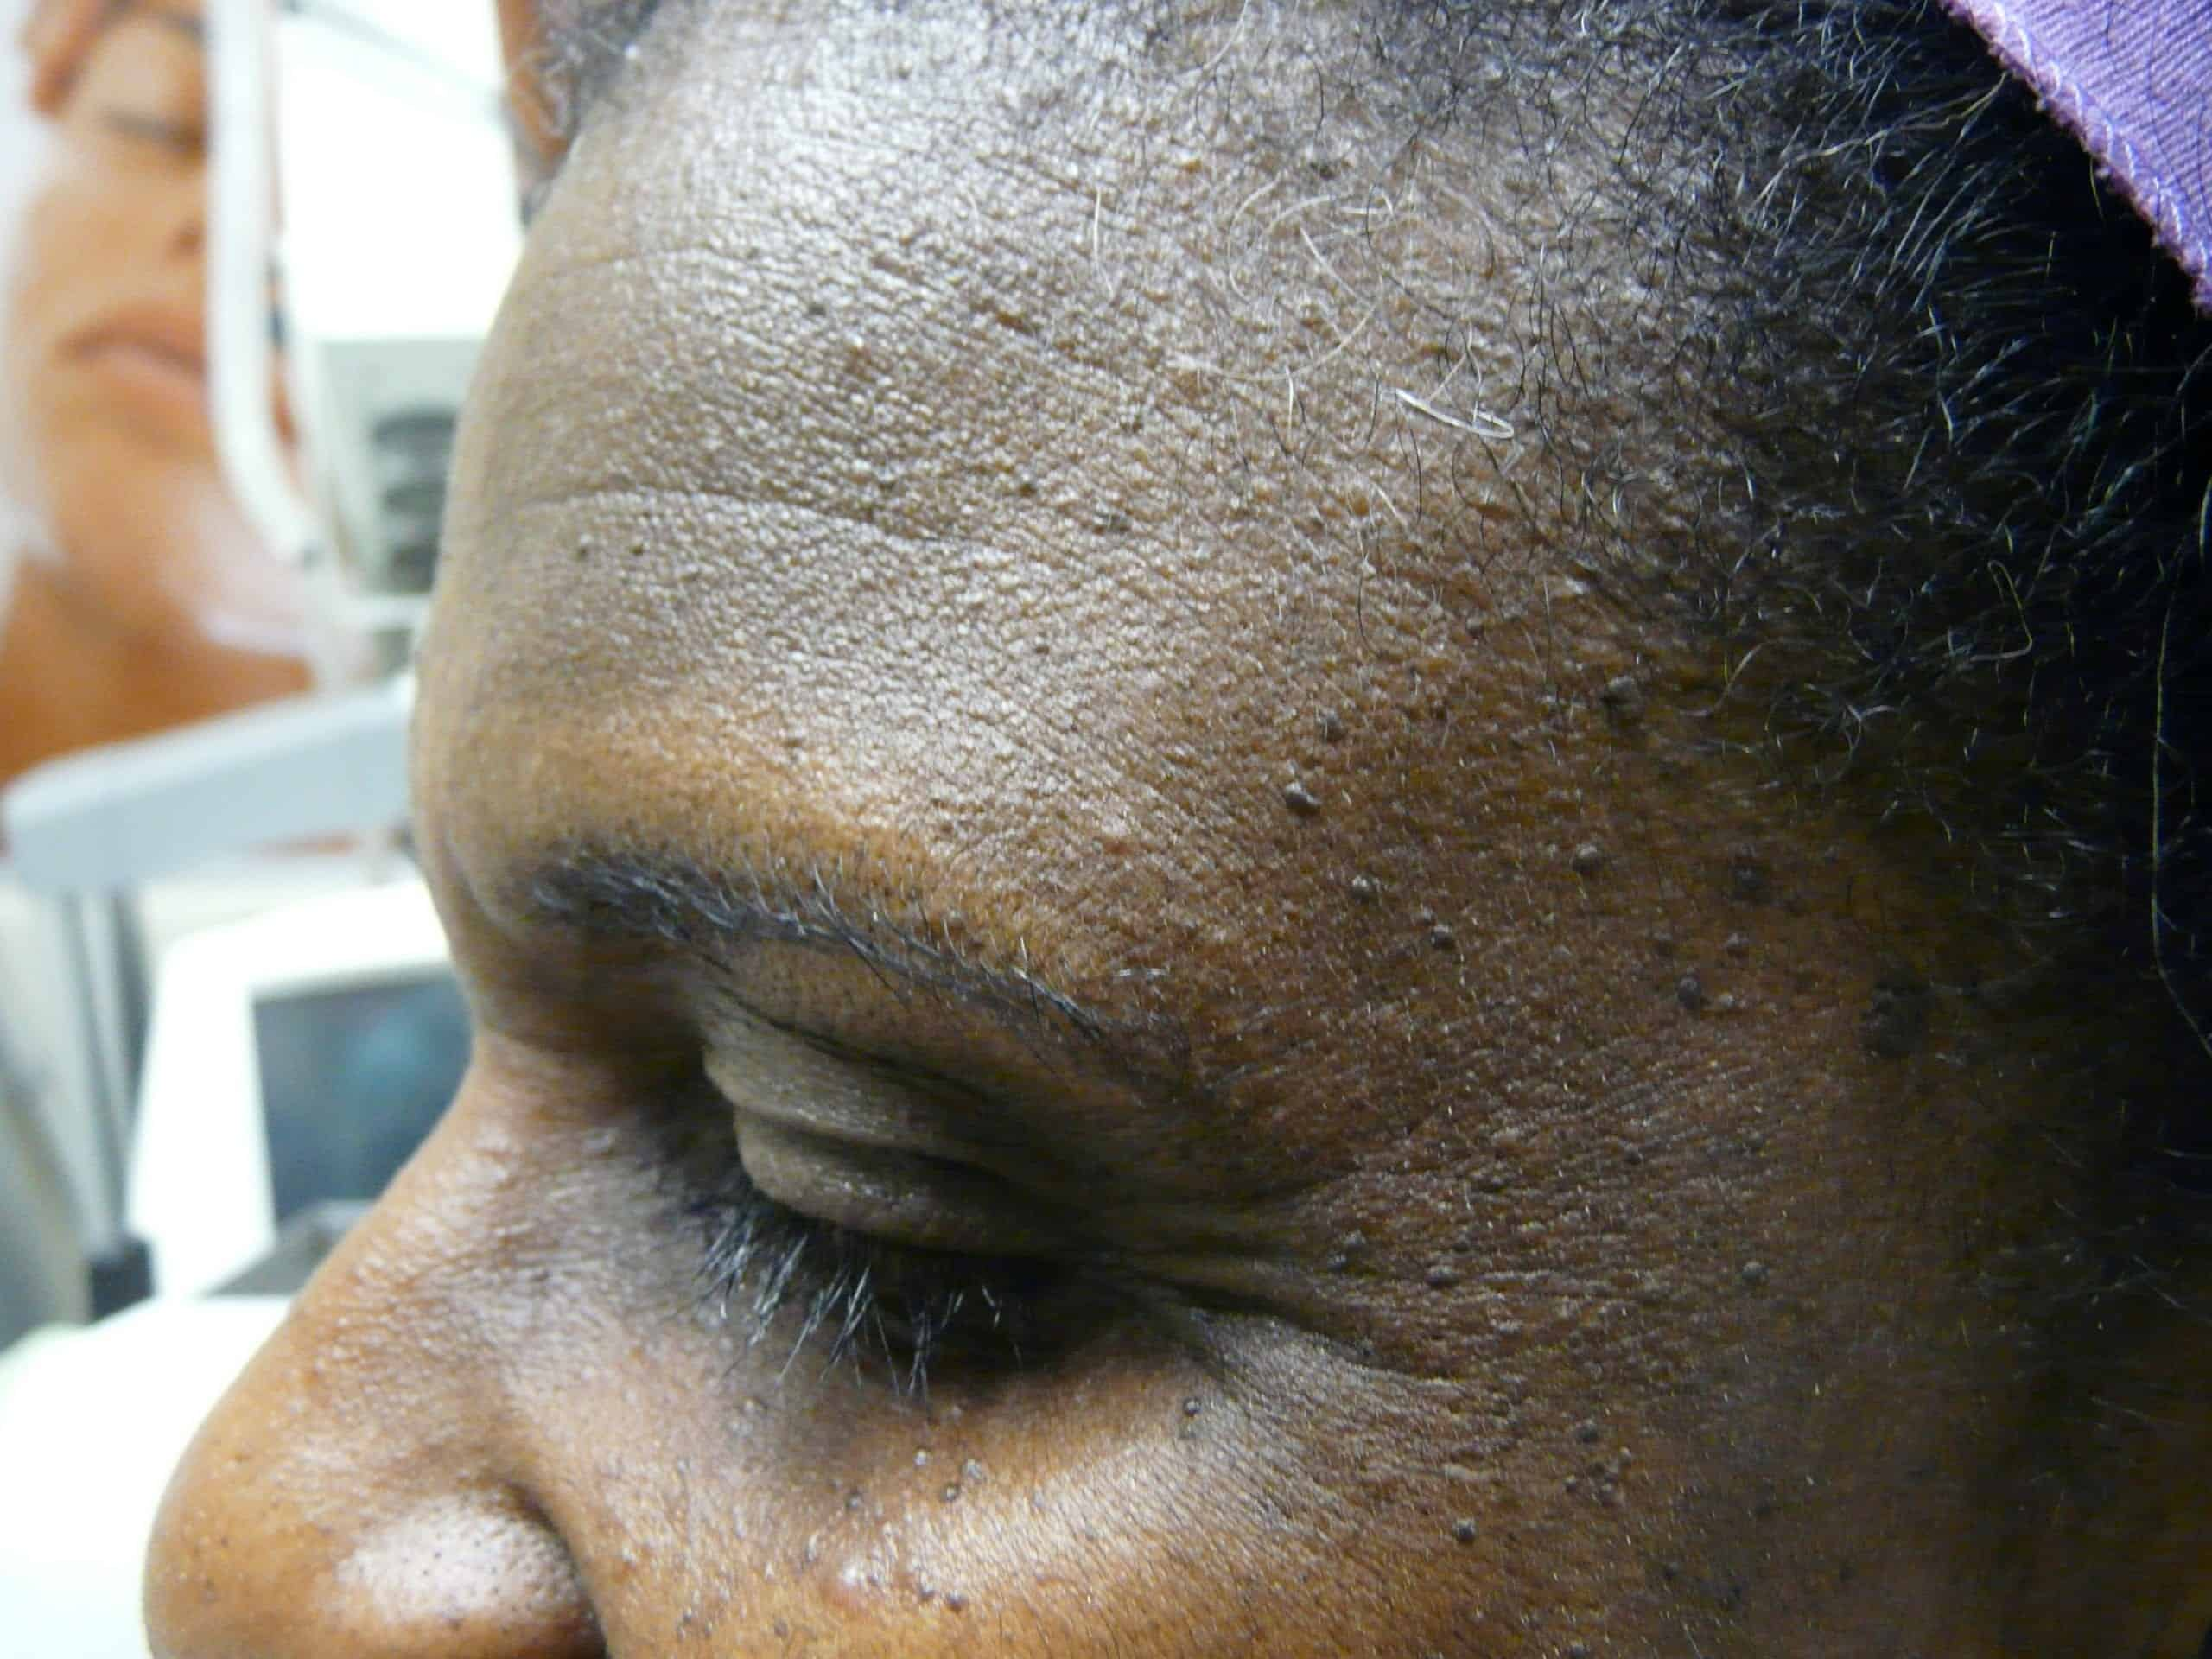 An example of DPN skin causes